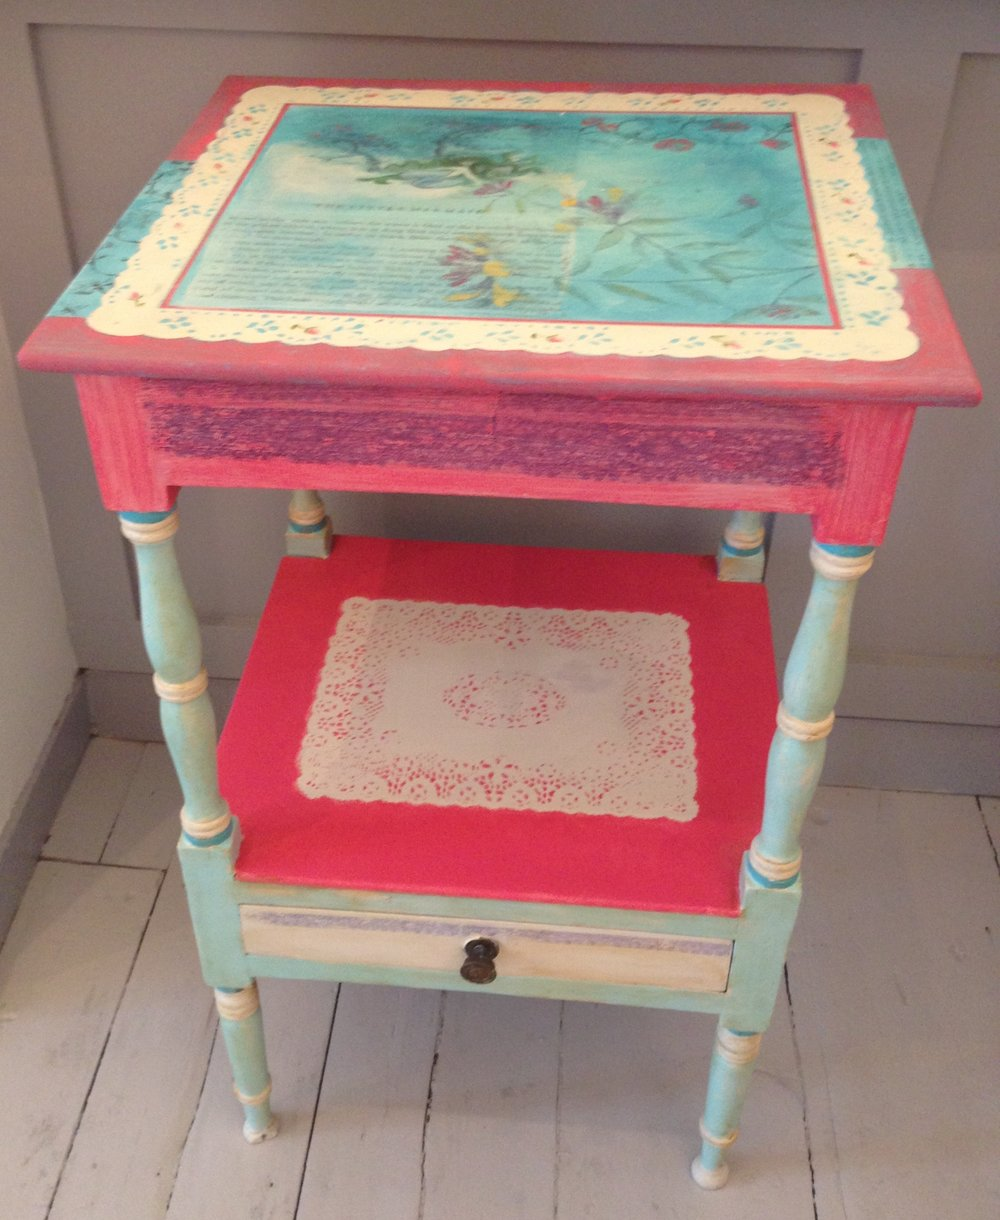 'Little Mermaid' Table.jpg